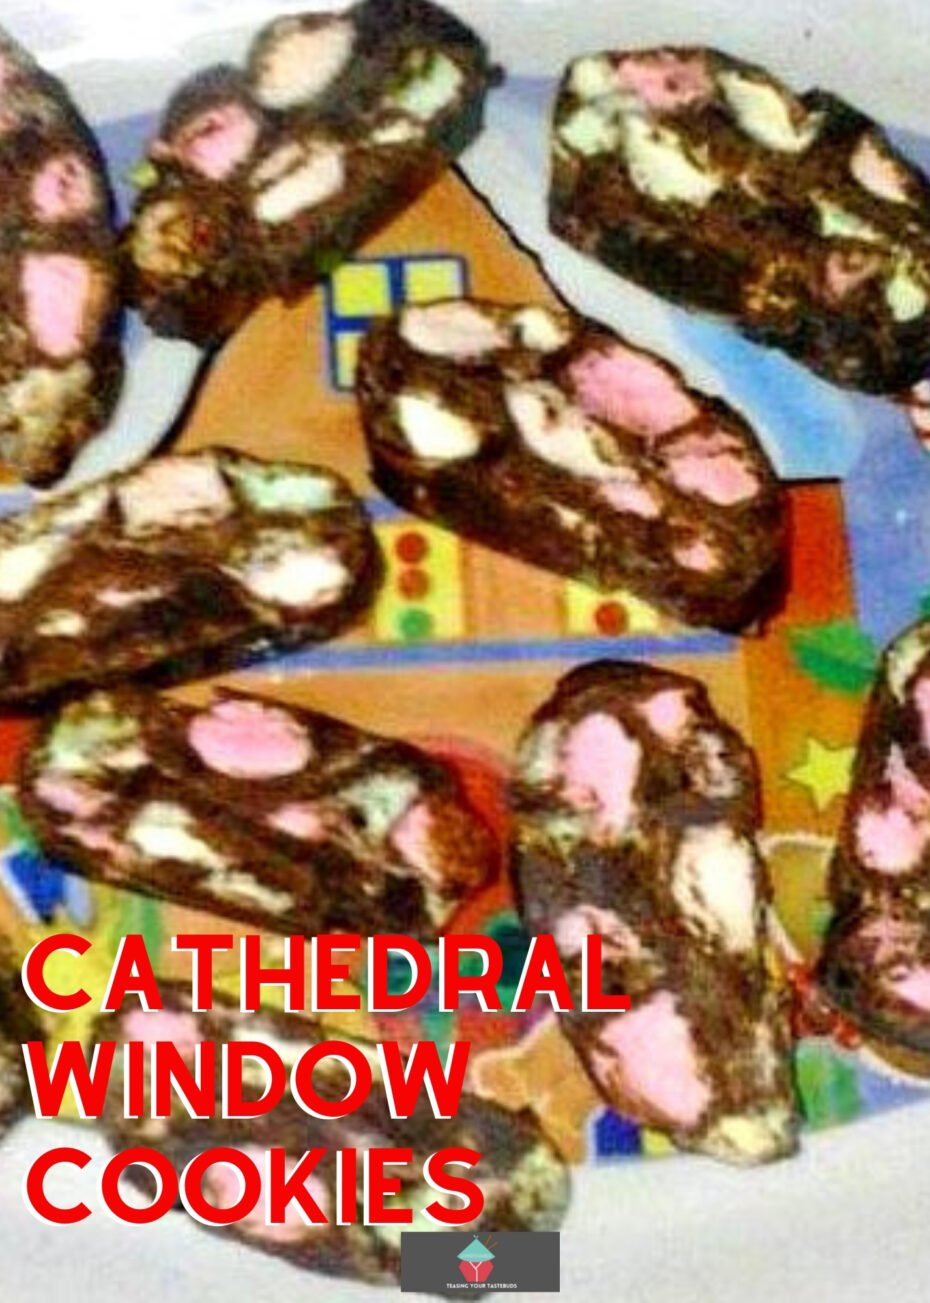 Cathedral Window Cookies are classic American cookies that look like stained glass windows. These no-bake cookies are a combinaton of chocolate and marshmallows and are perfect for your cookie tray.